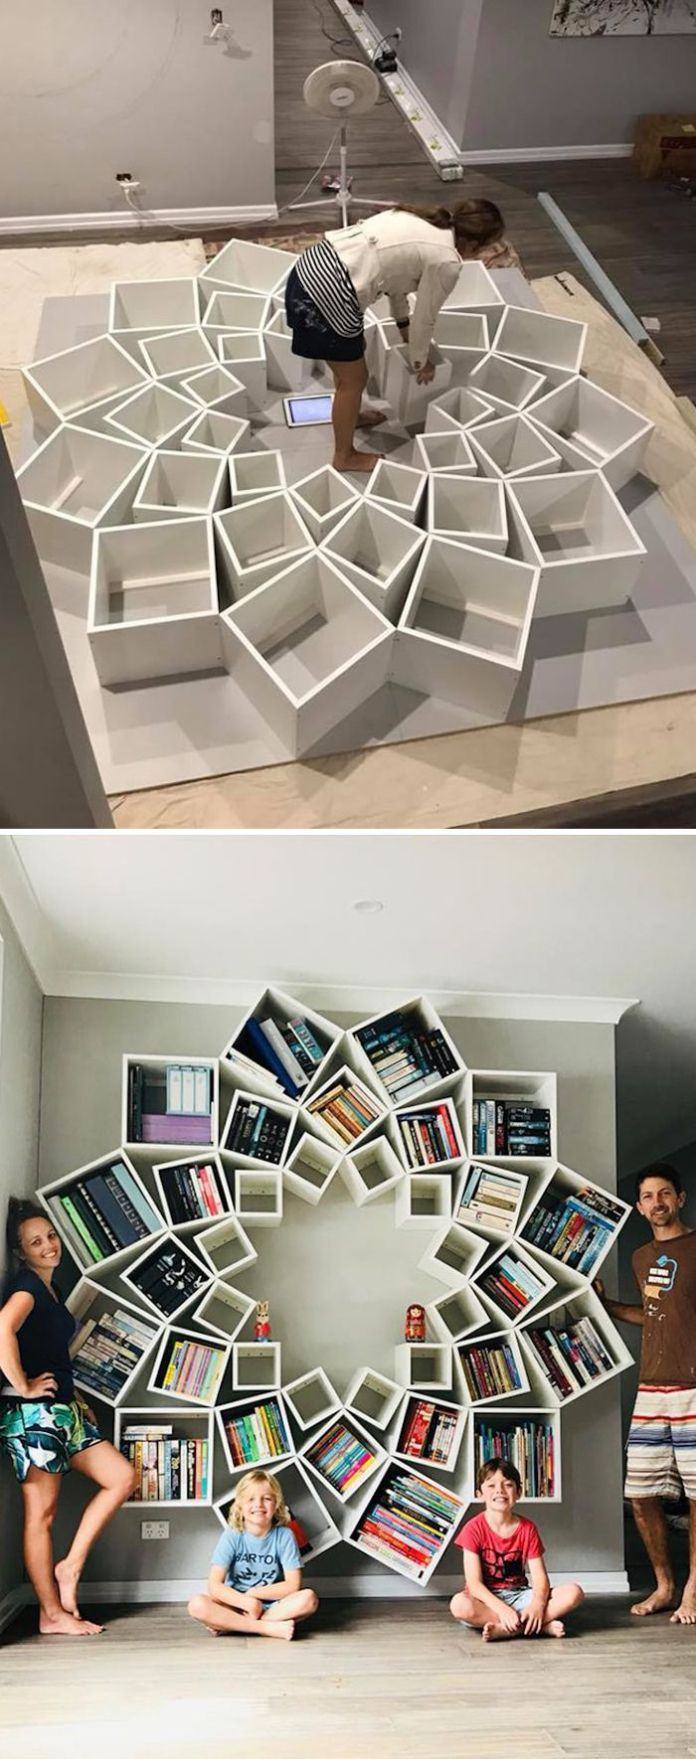 DIY Shelves Trendy Ideas : With so many projects being DIY fails this family has found a win with this #bo